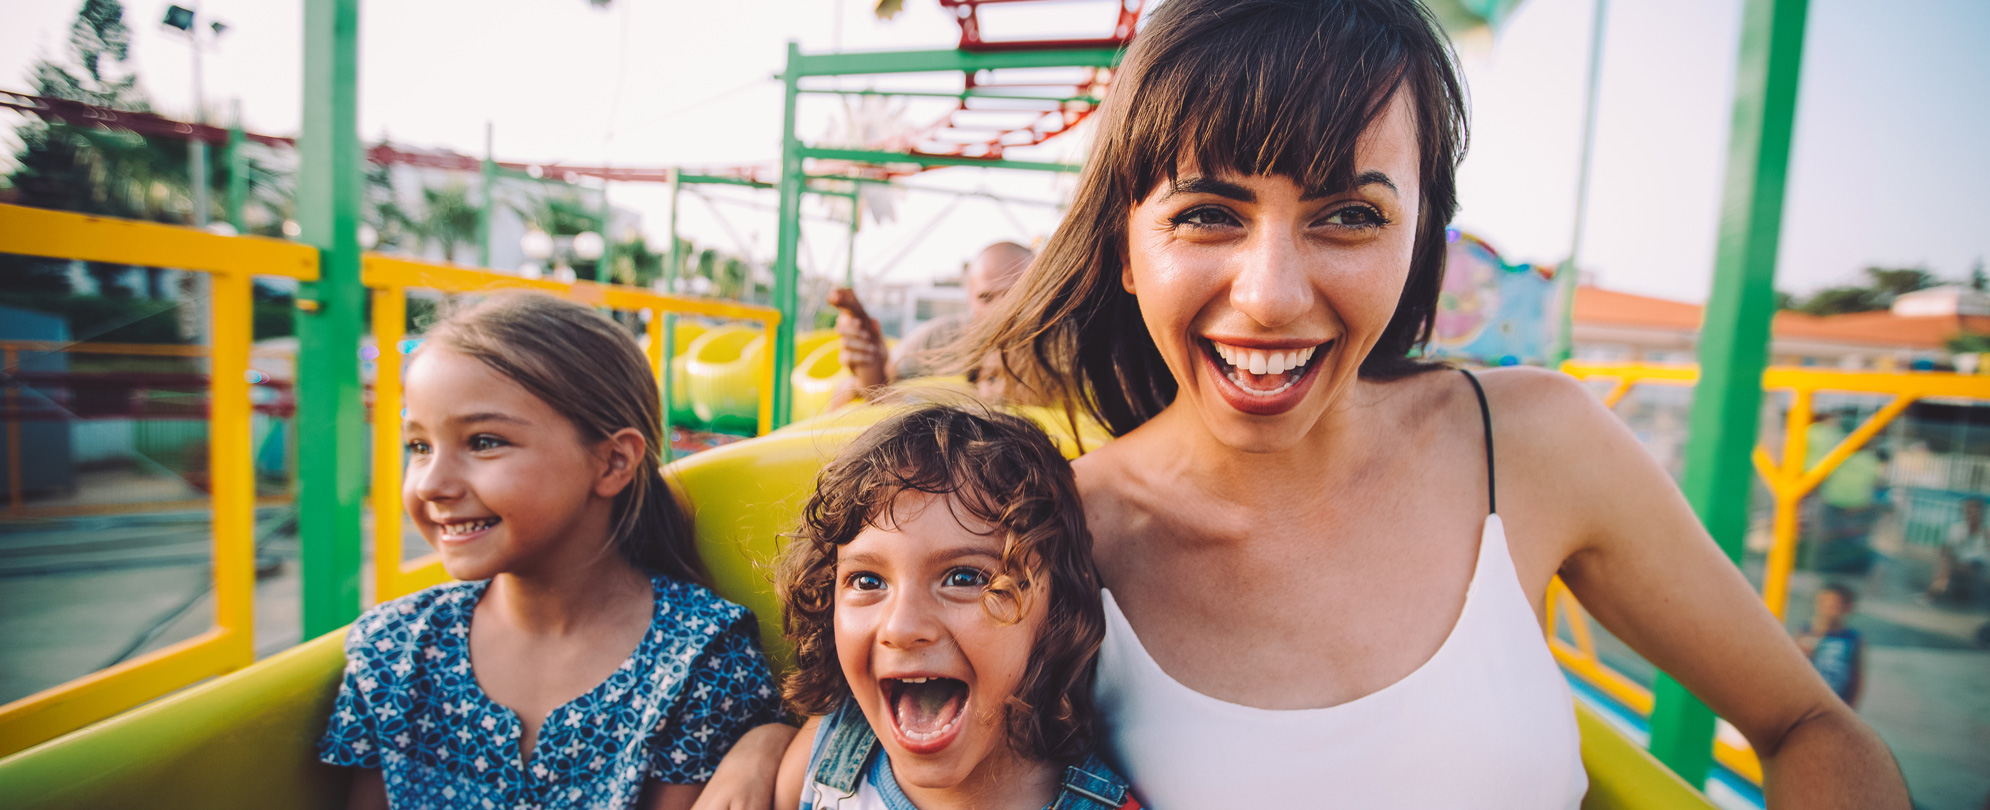 Mother and two daughters laughing on a caterpillar amusement park ride